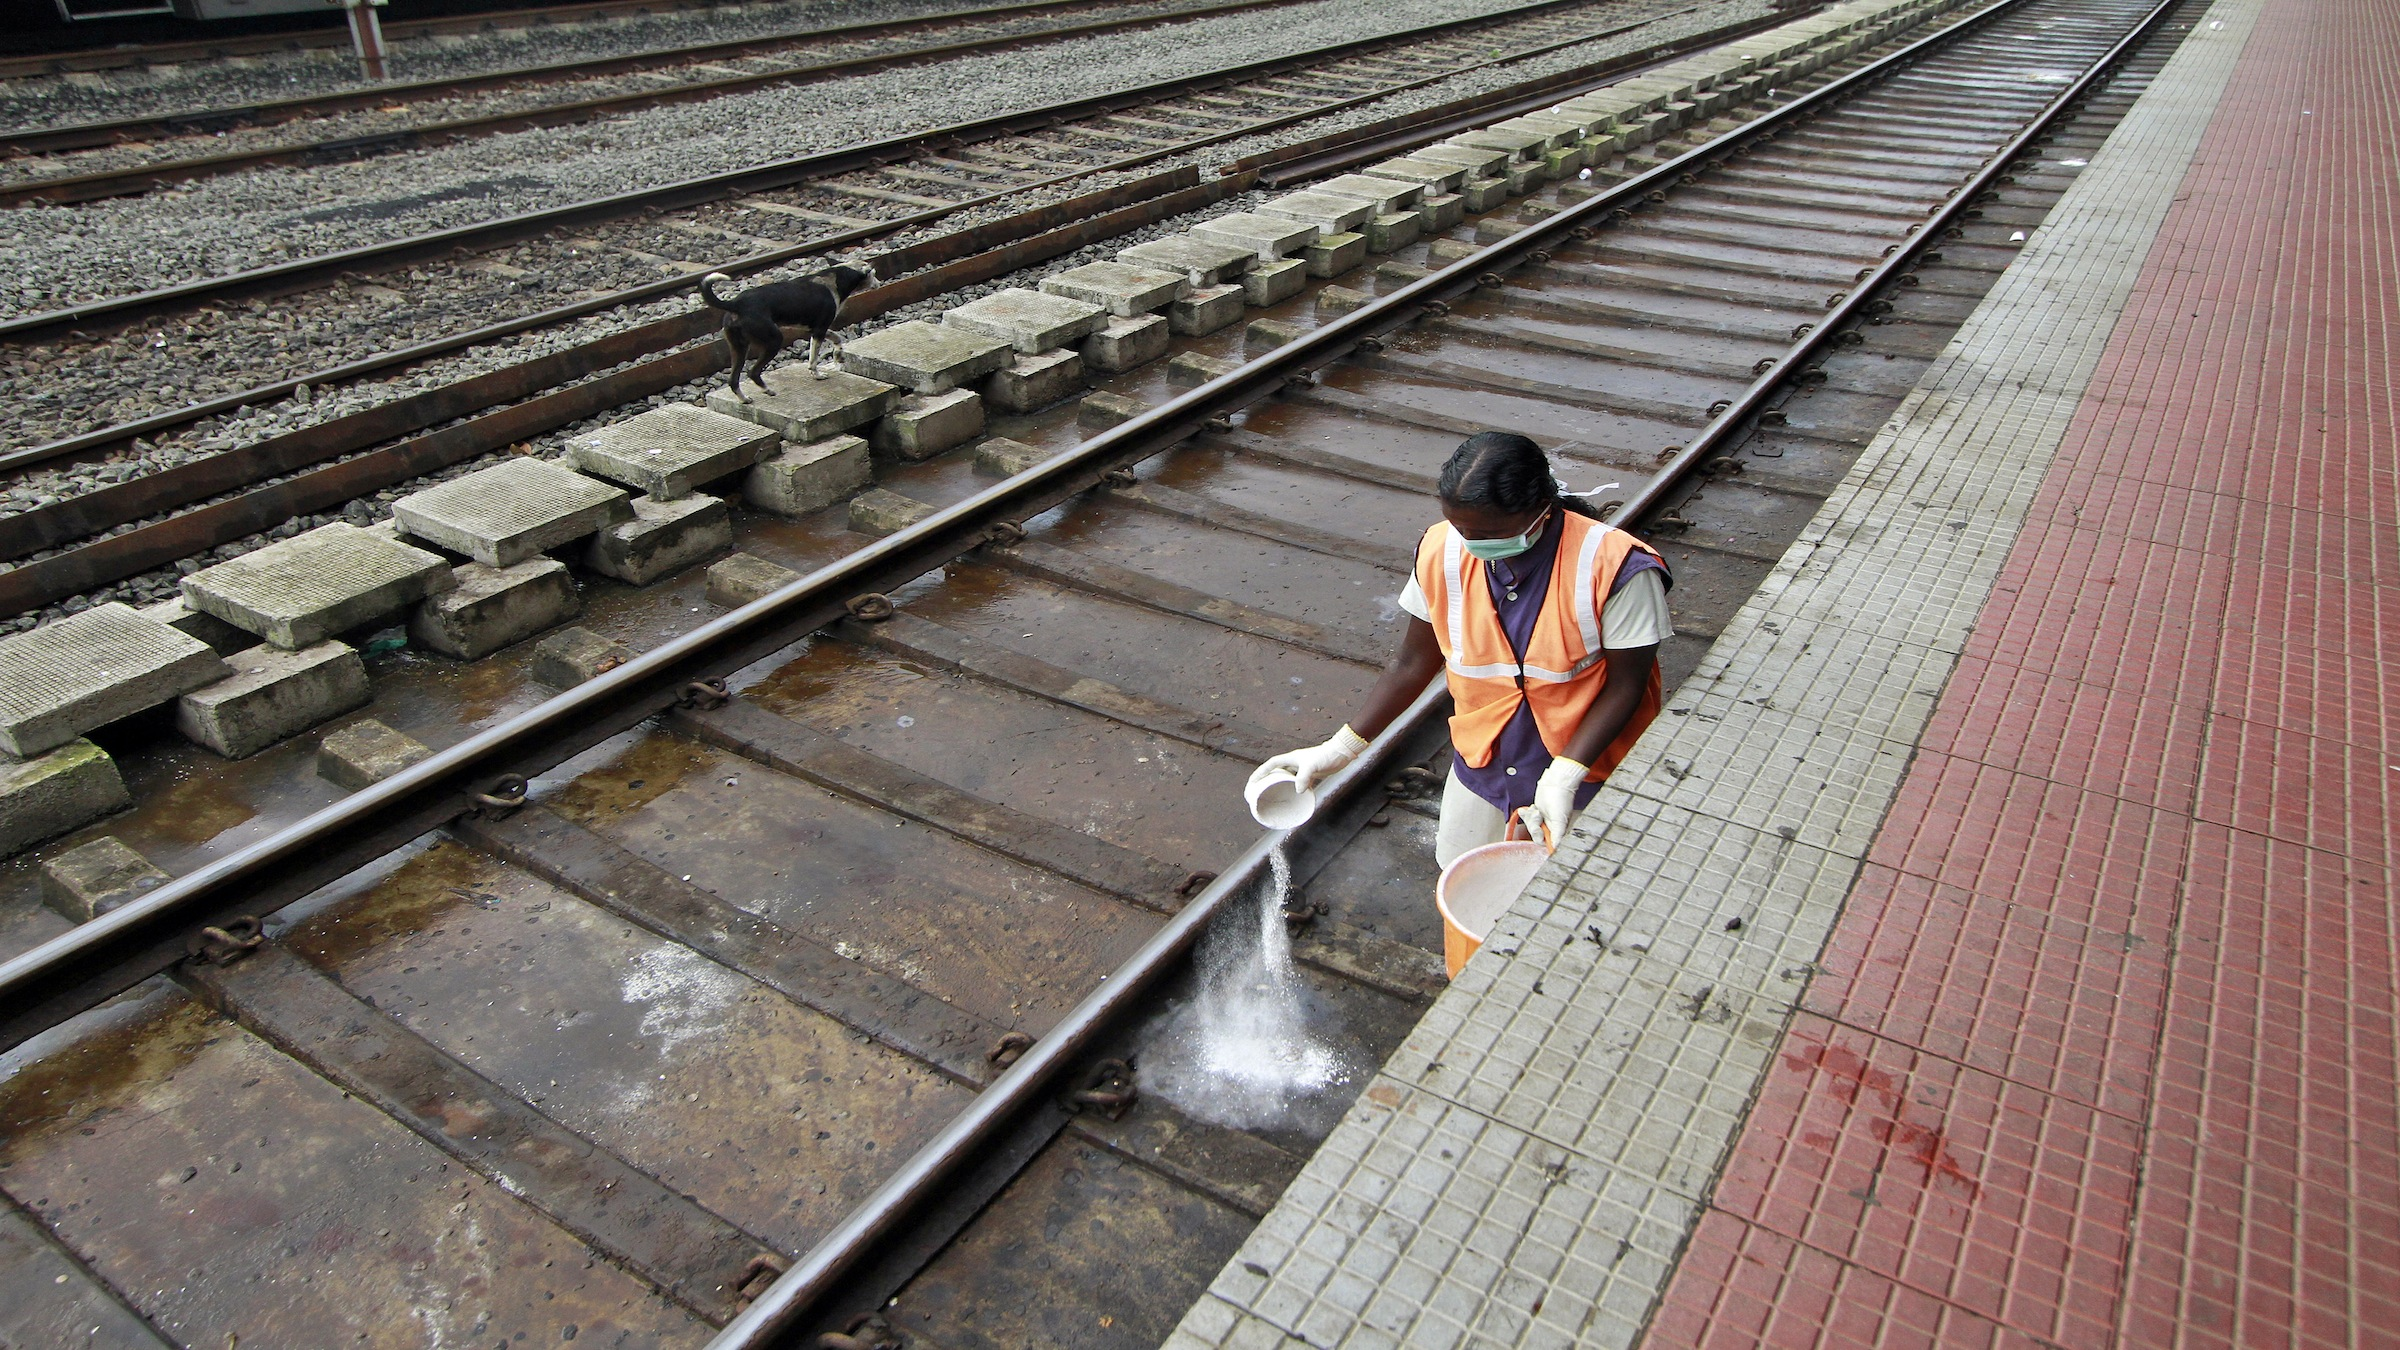 The waste dumped by the trains corrodes tracks.